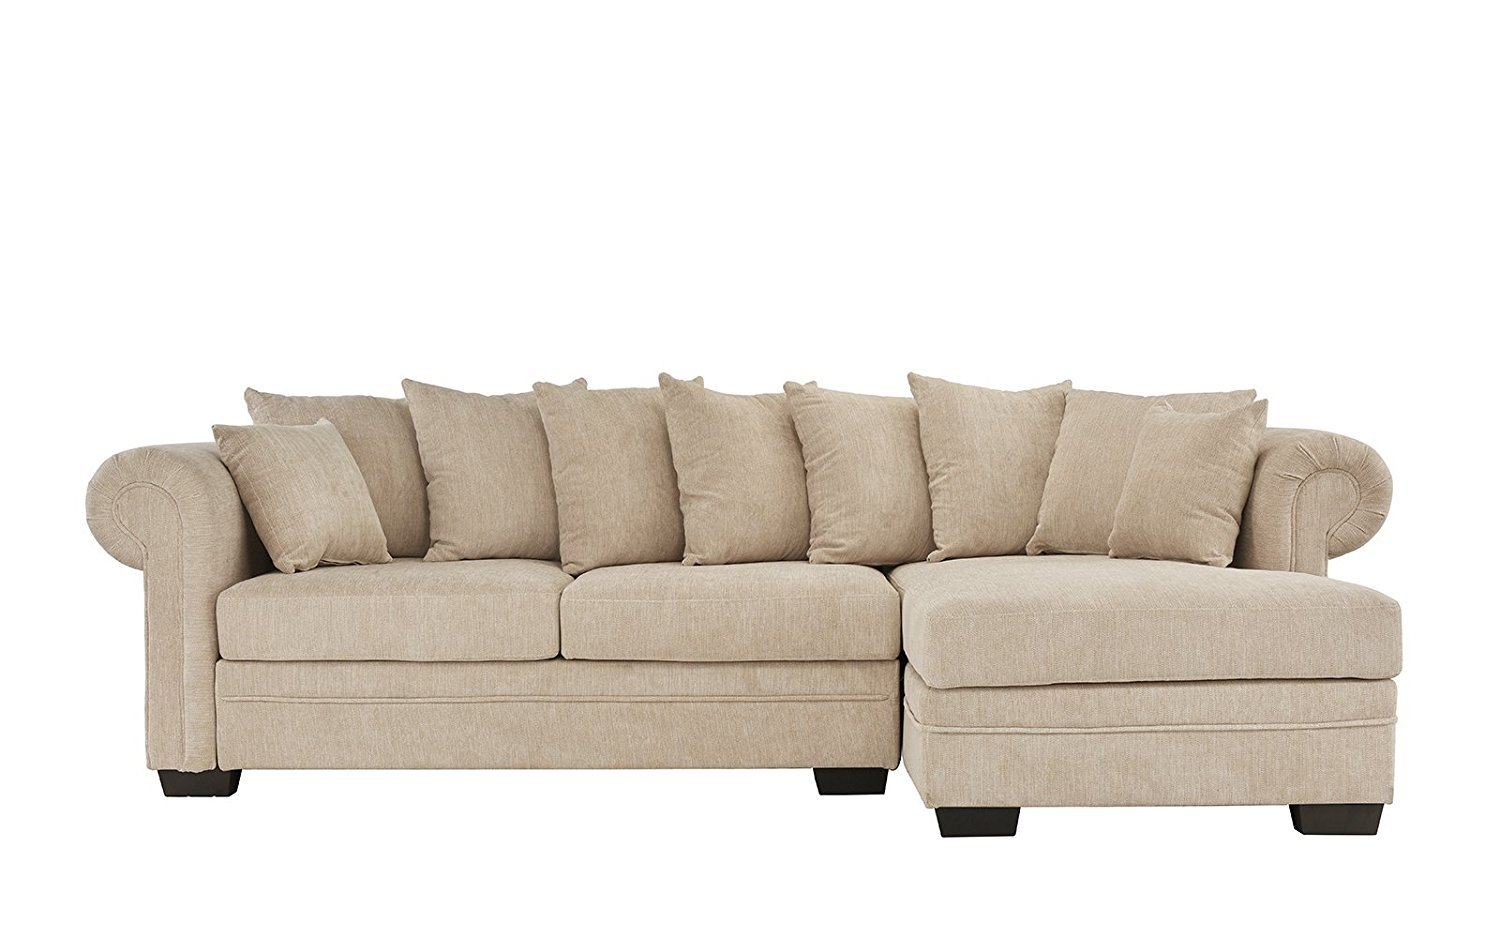 Modern Large Fabric Sectional Sofa L Shape Couch Right Facing